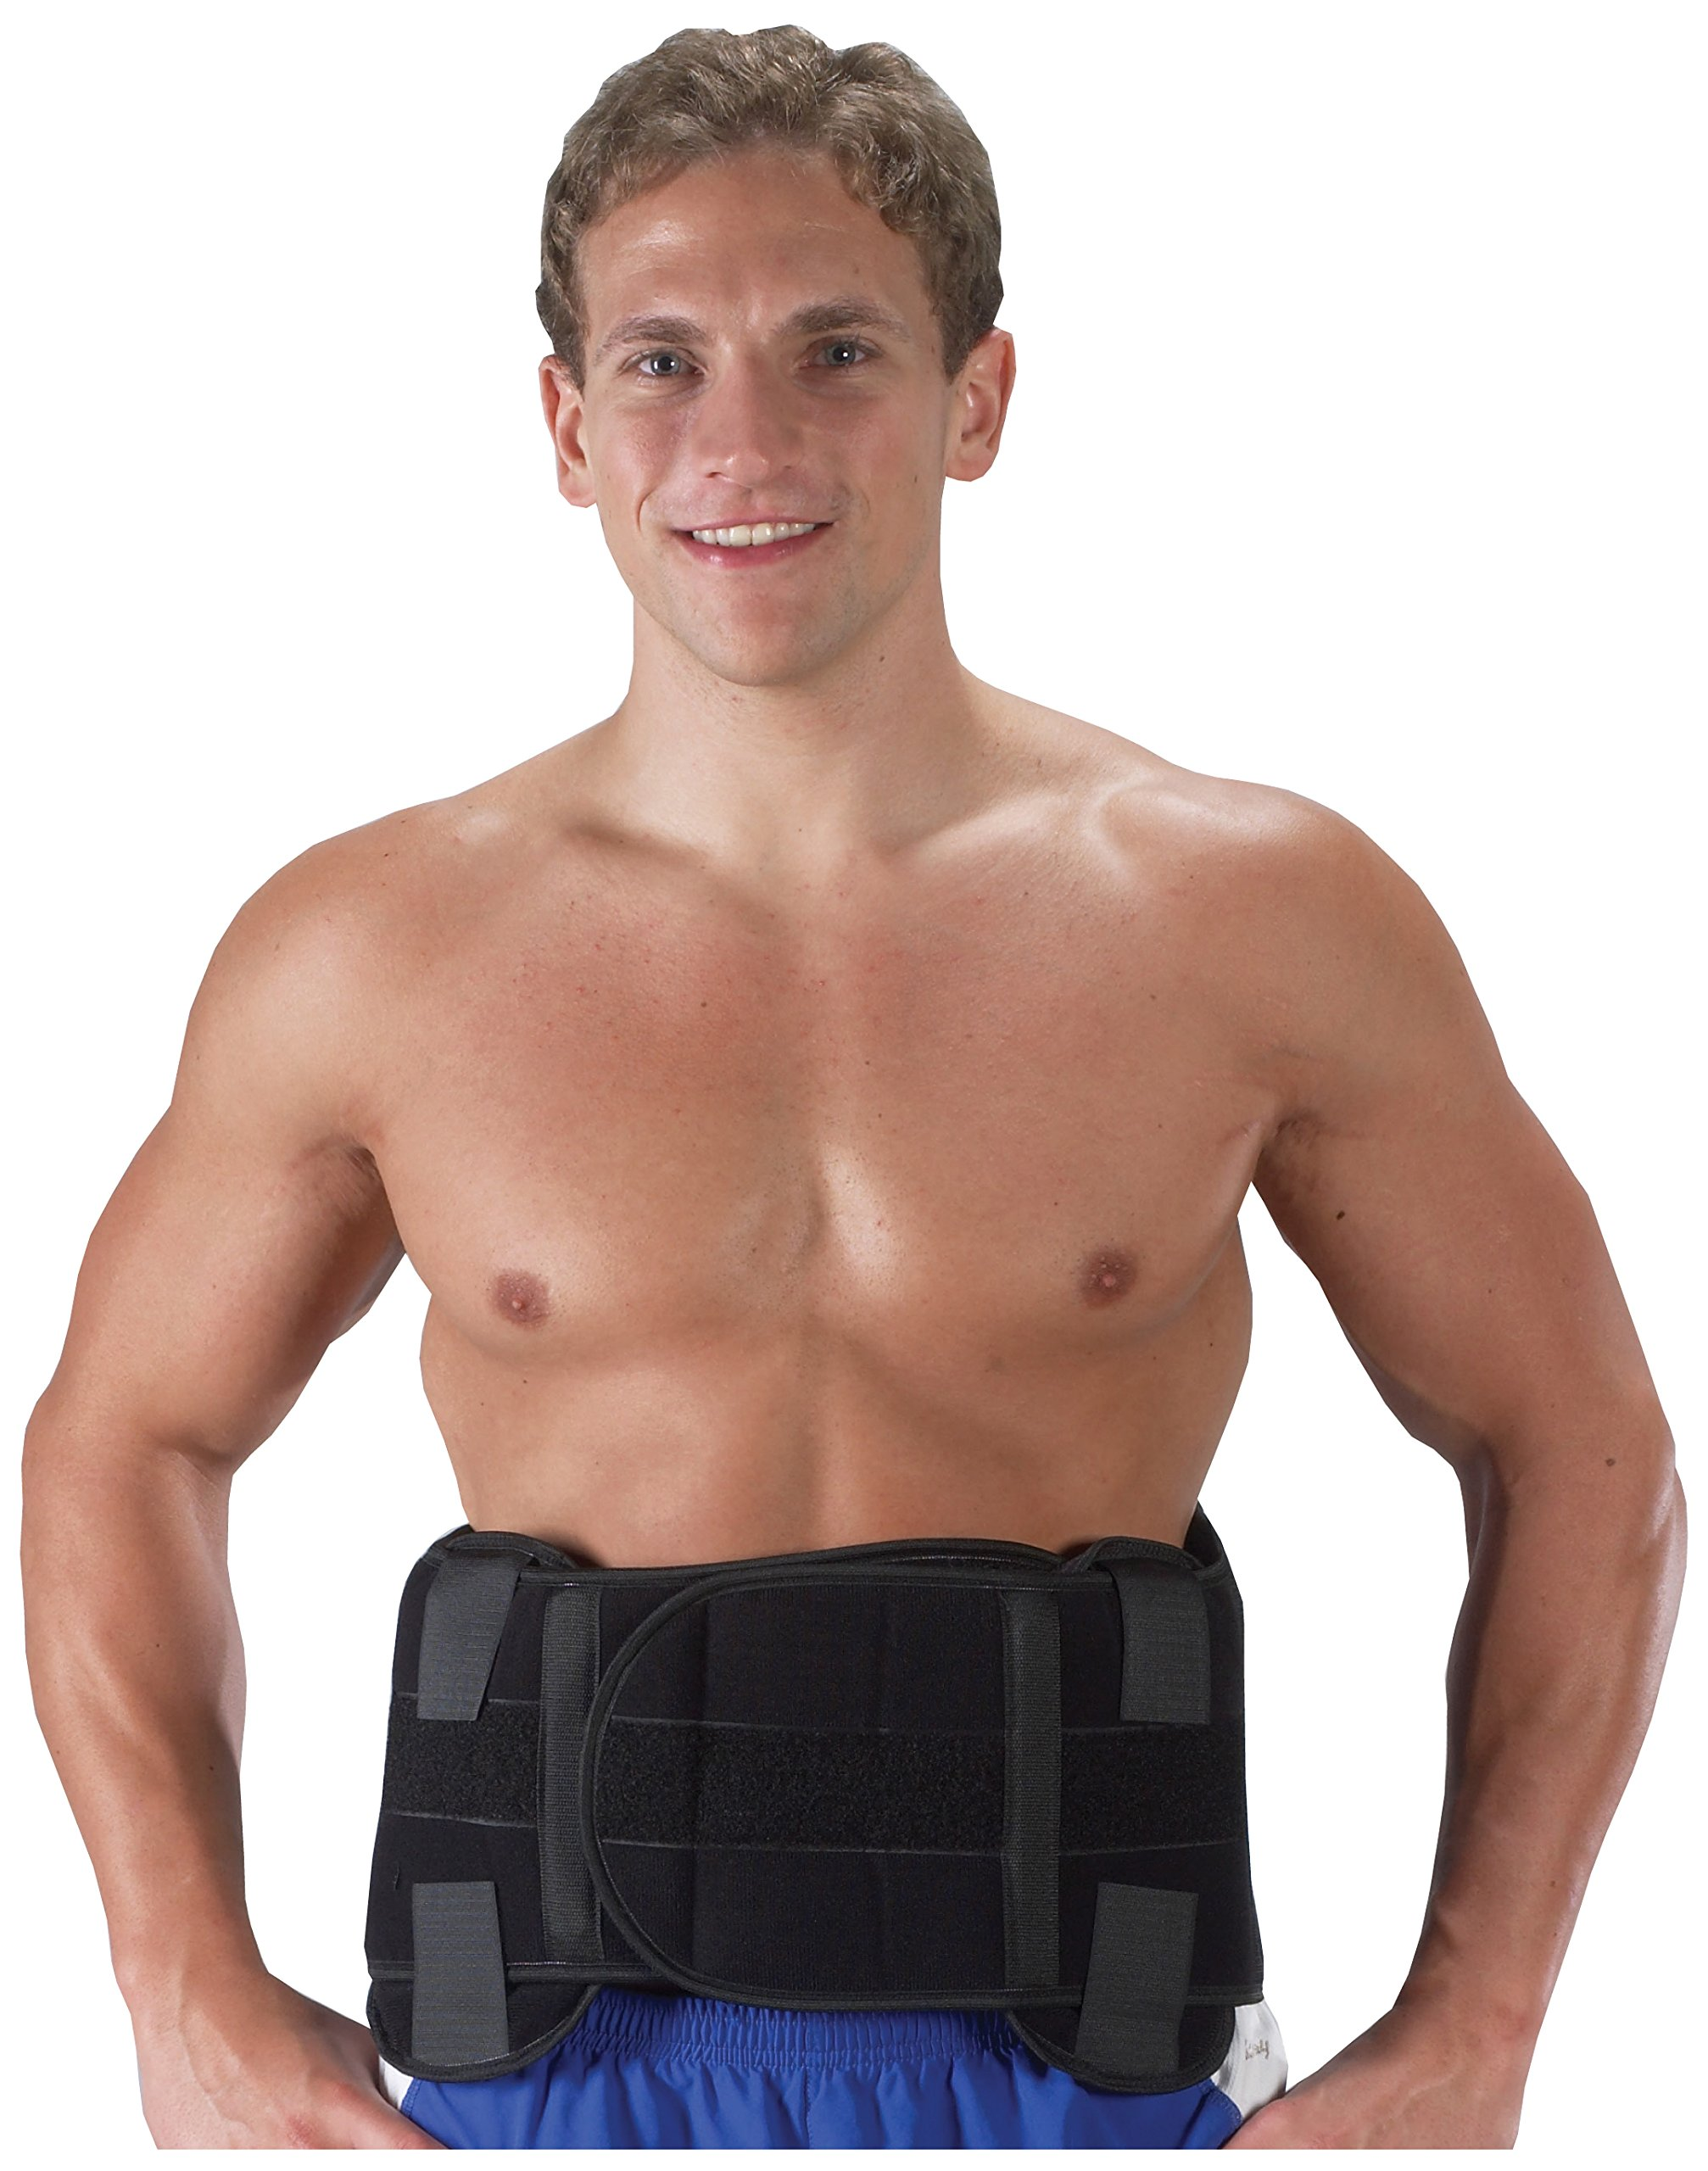 Bilt-Rite Mastex Health Lumbo Protech Extreme Back Support, Black, Large